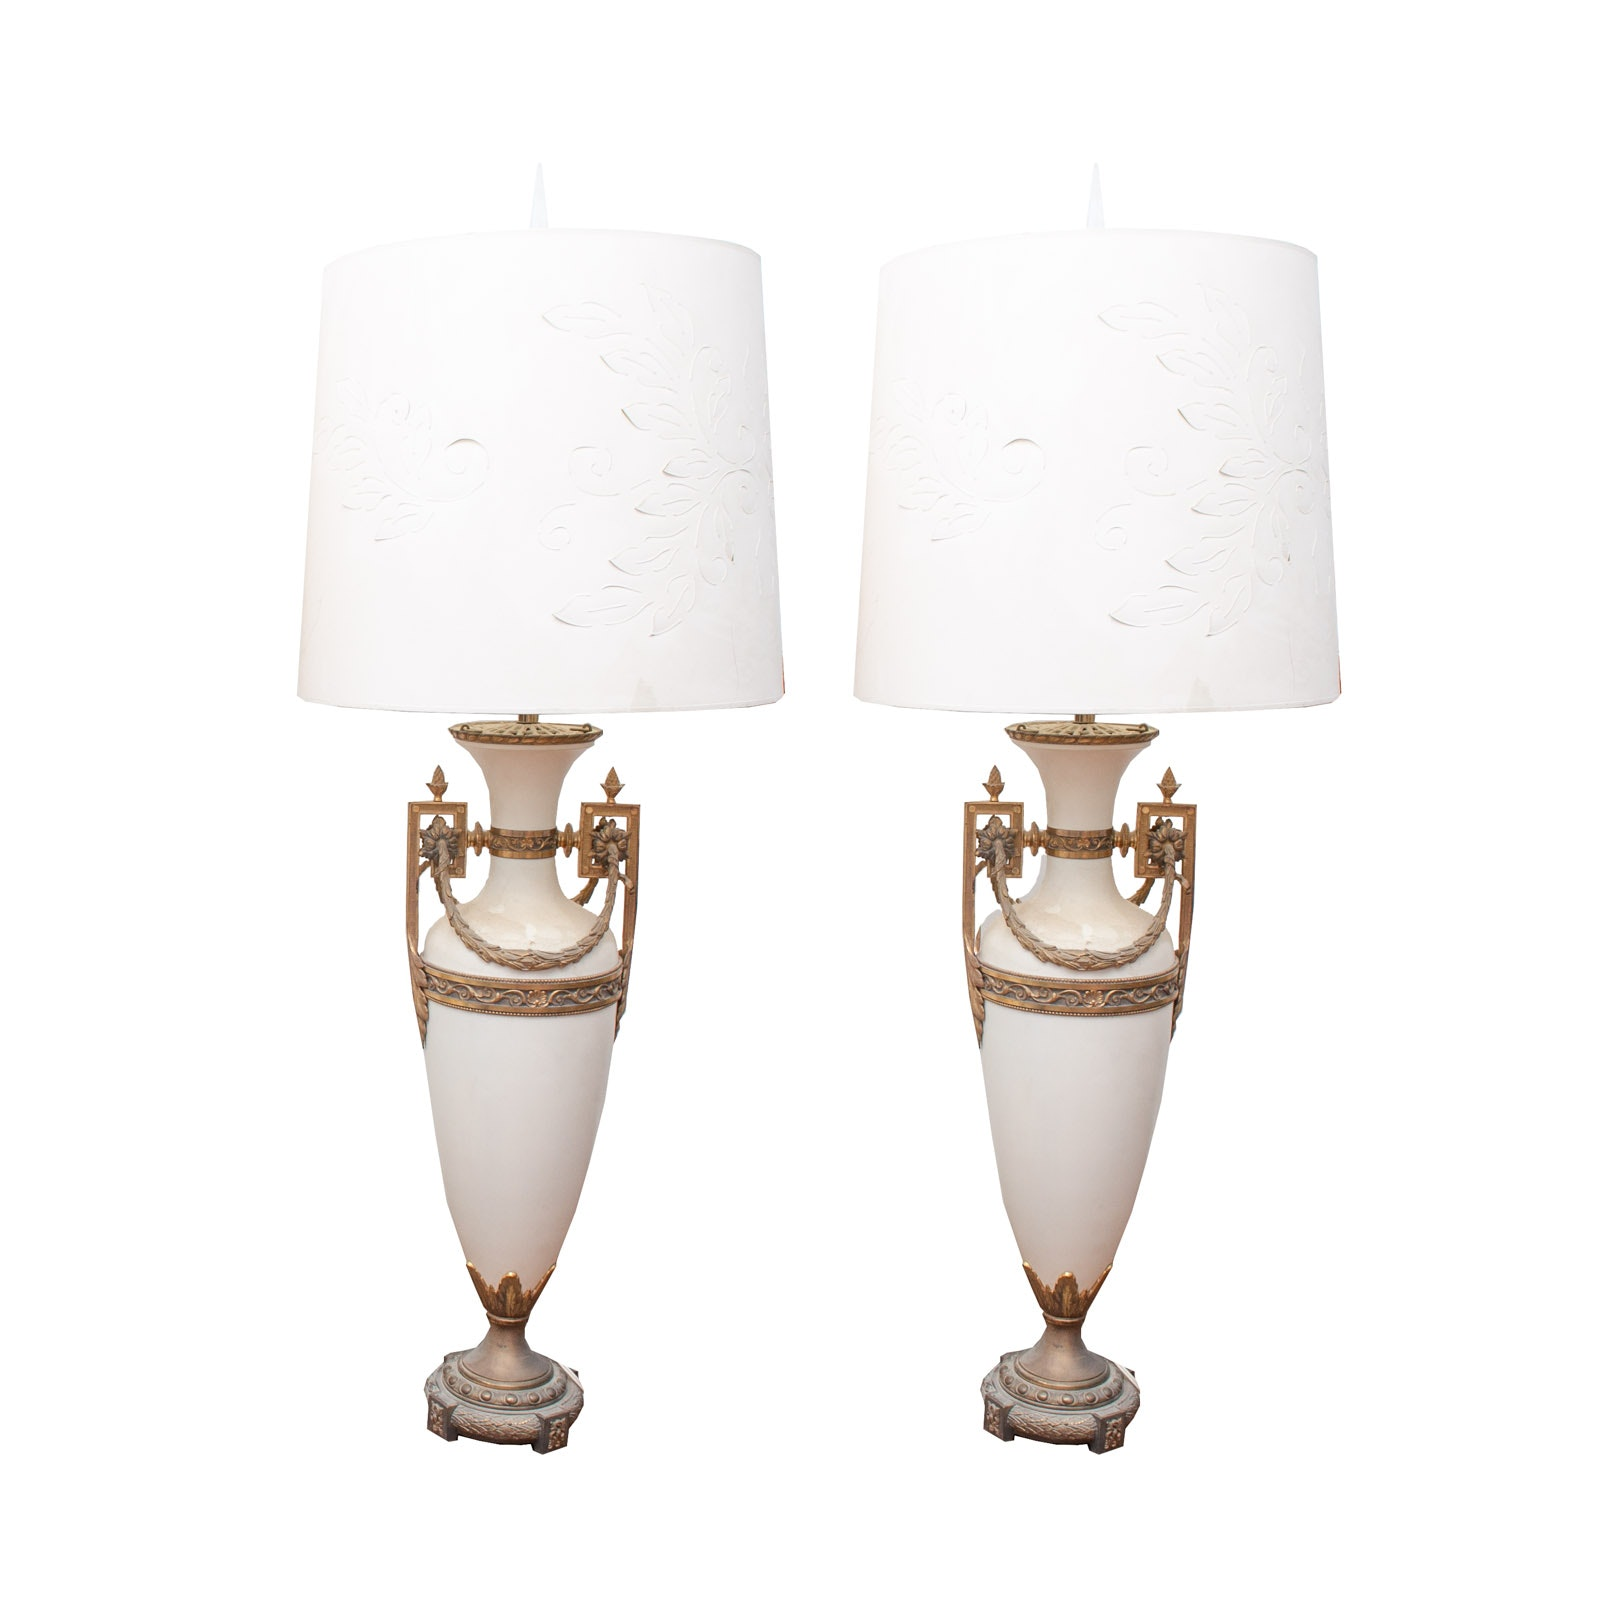 Substantial Neoclassical-Style Brass Urn Table Lamps